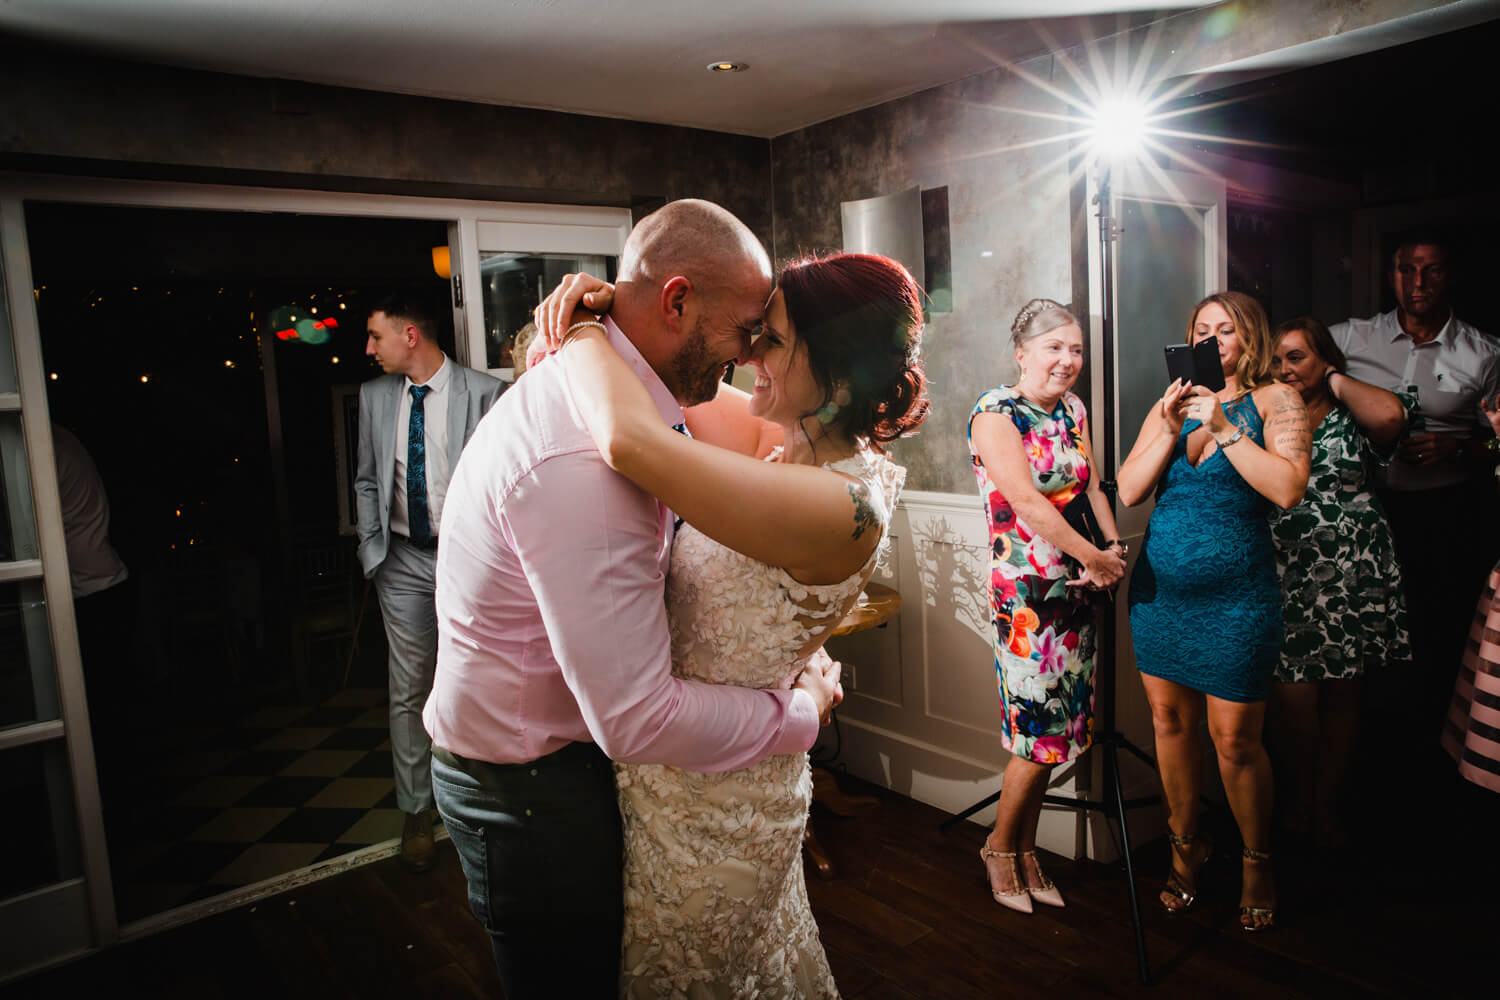 close up photograph of bride and groom together on dance floor